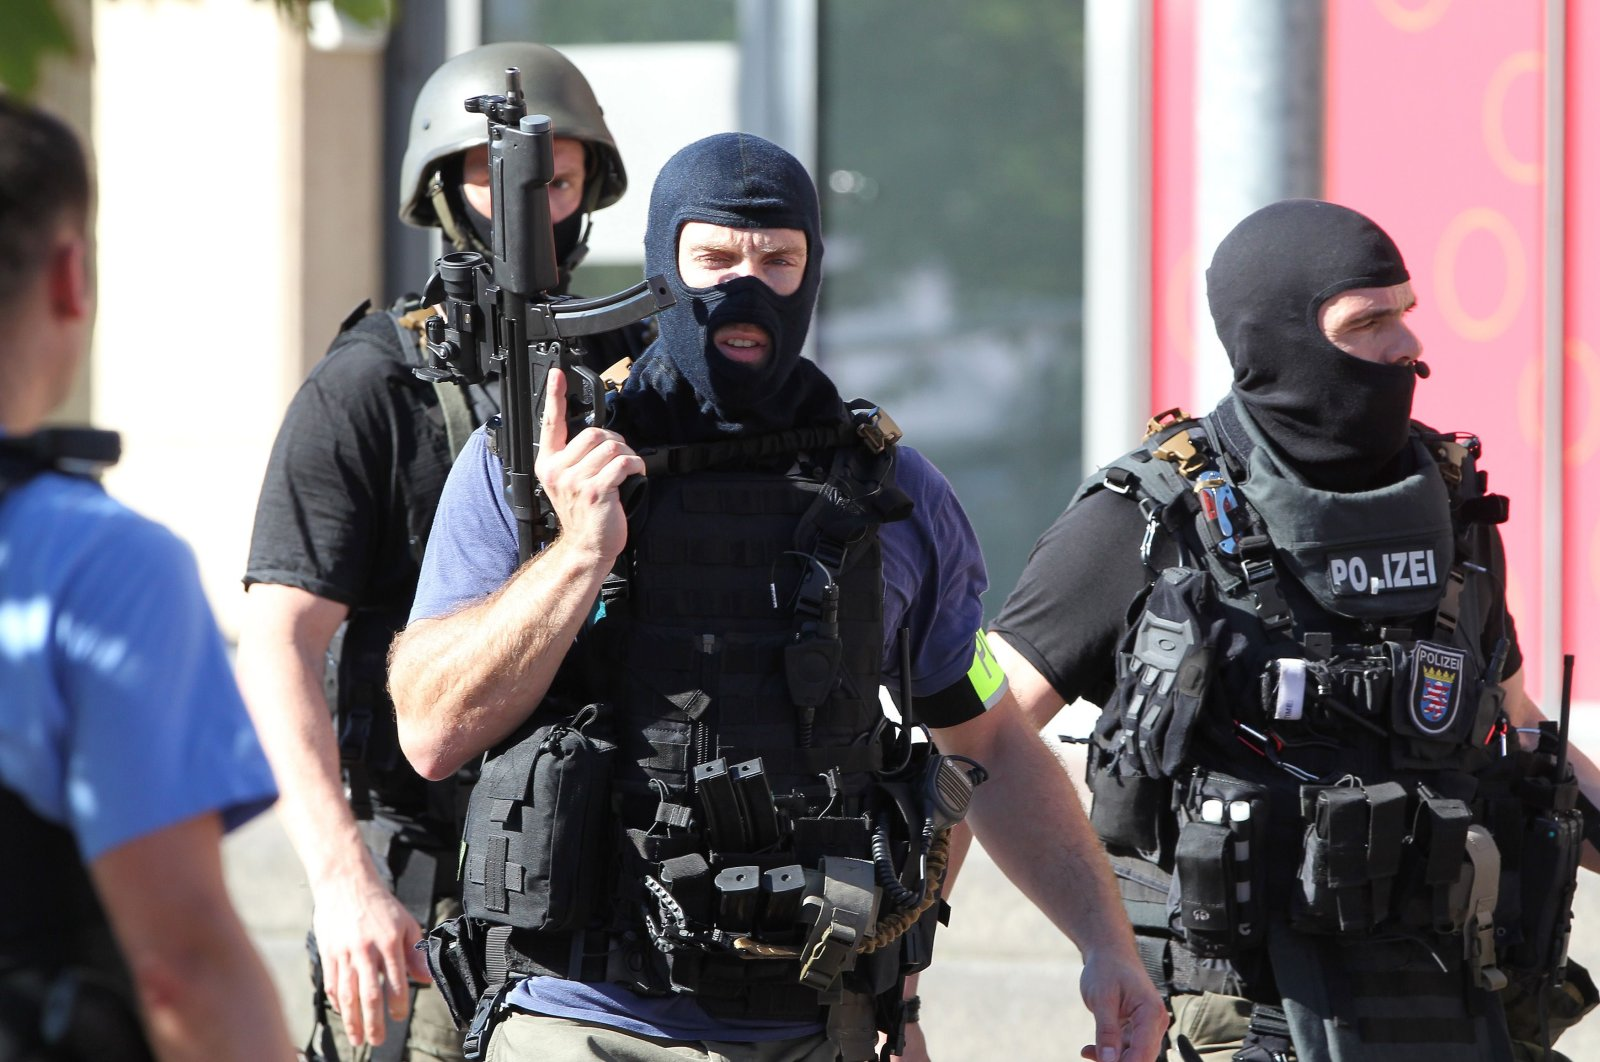 Policemen stand near a cinema where an armed man barricaded himself in Viernheim, southern Germany, June 23, 2016. (AFP Photo)